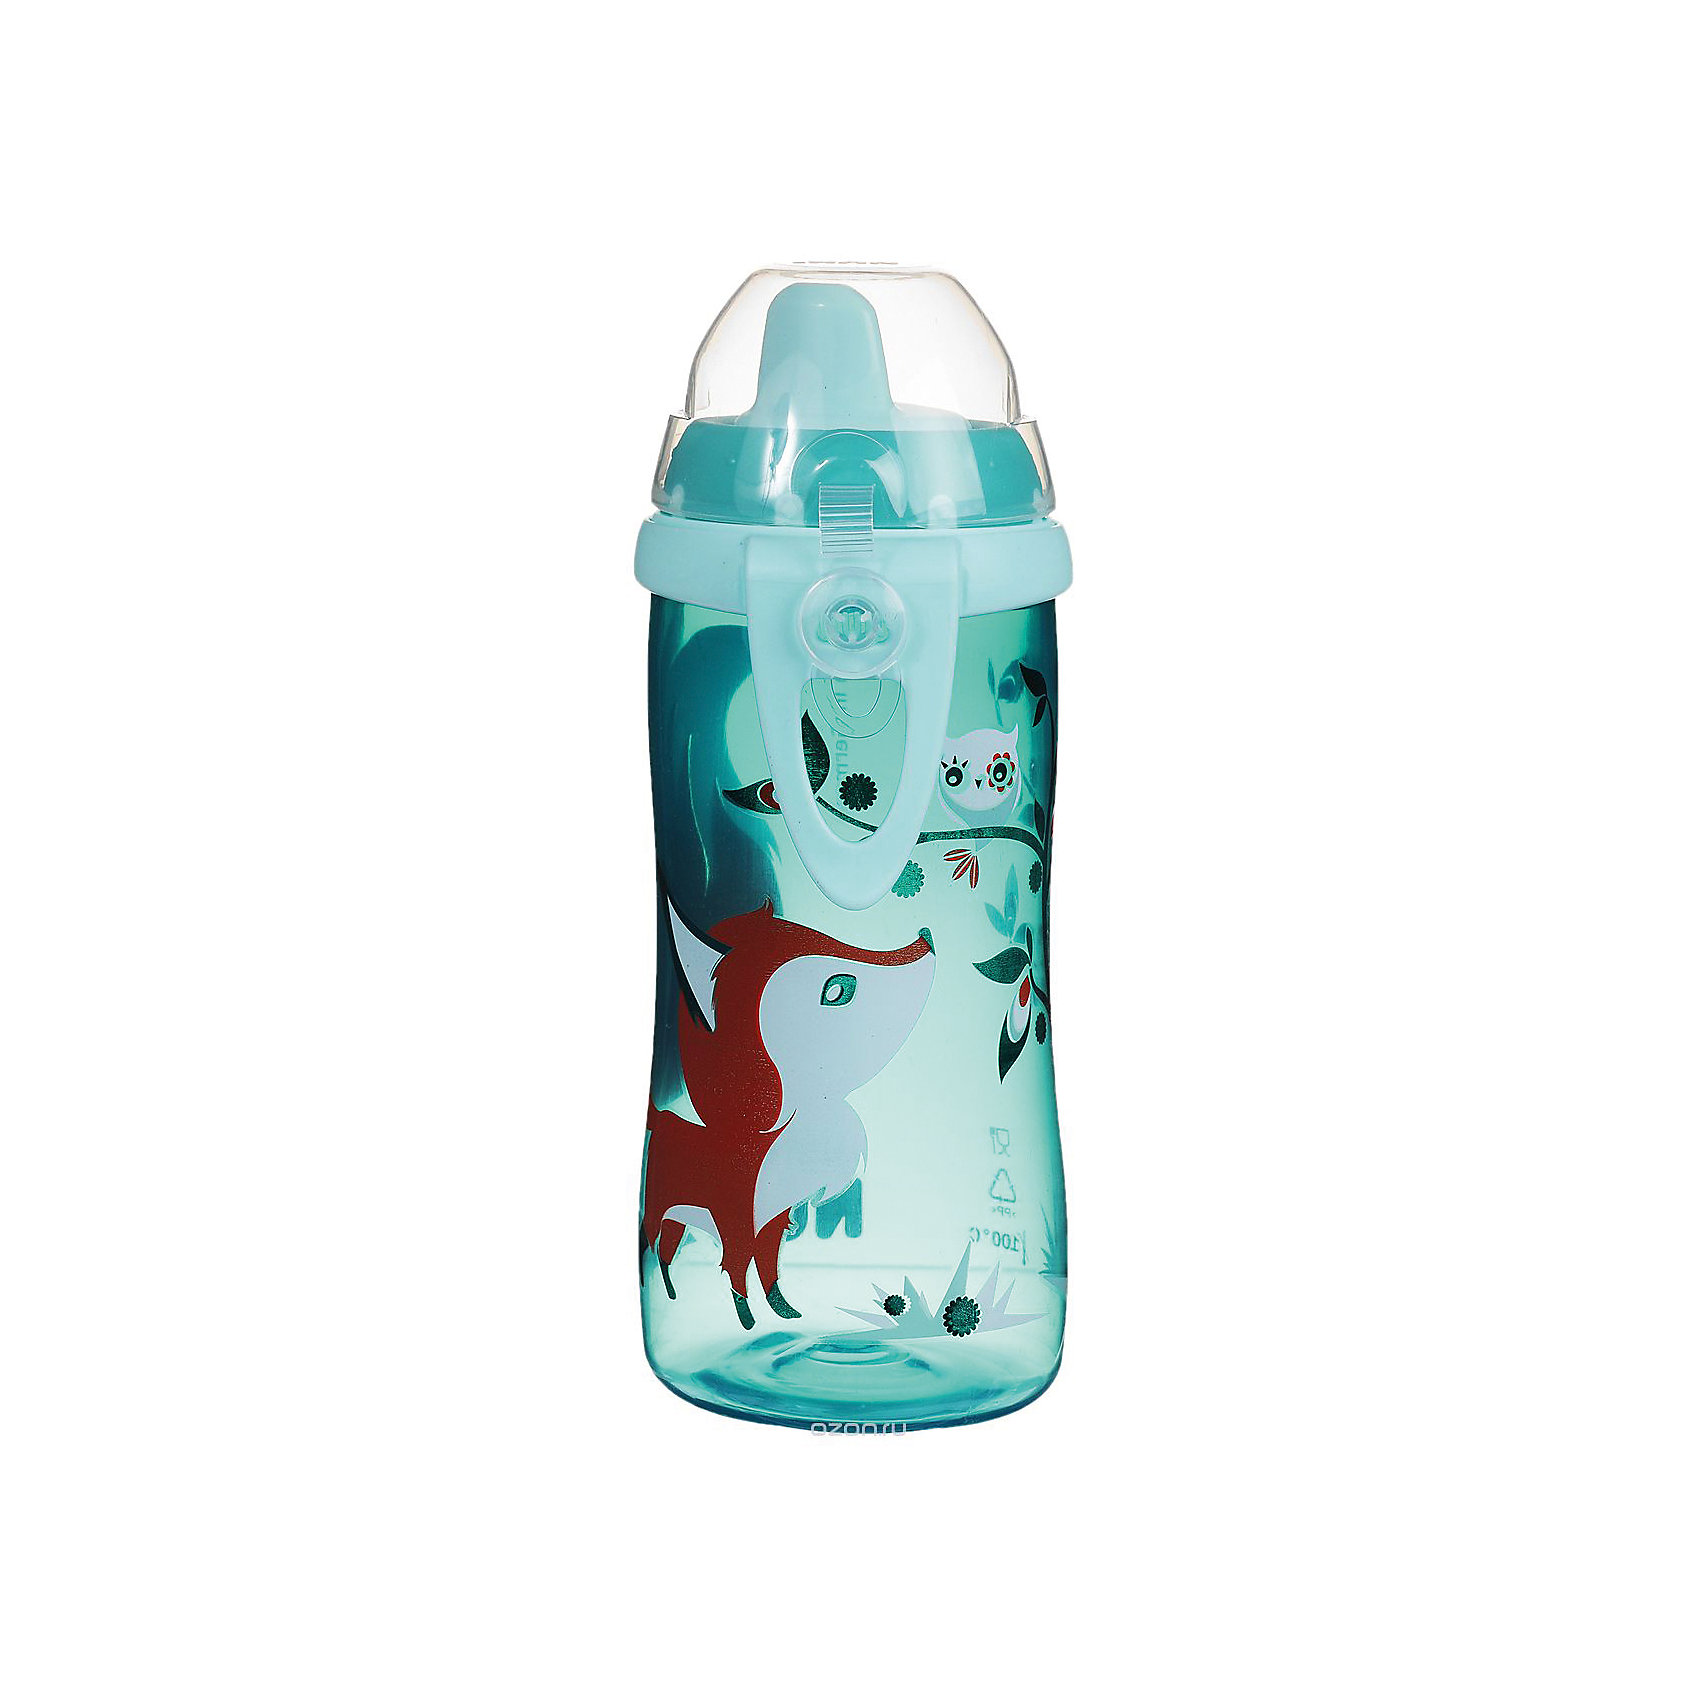 �������� Kiddy Cup 300 ��. � 12 ���., NUK, �������